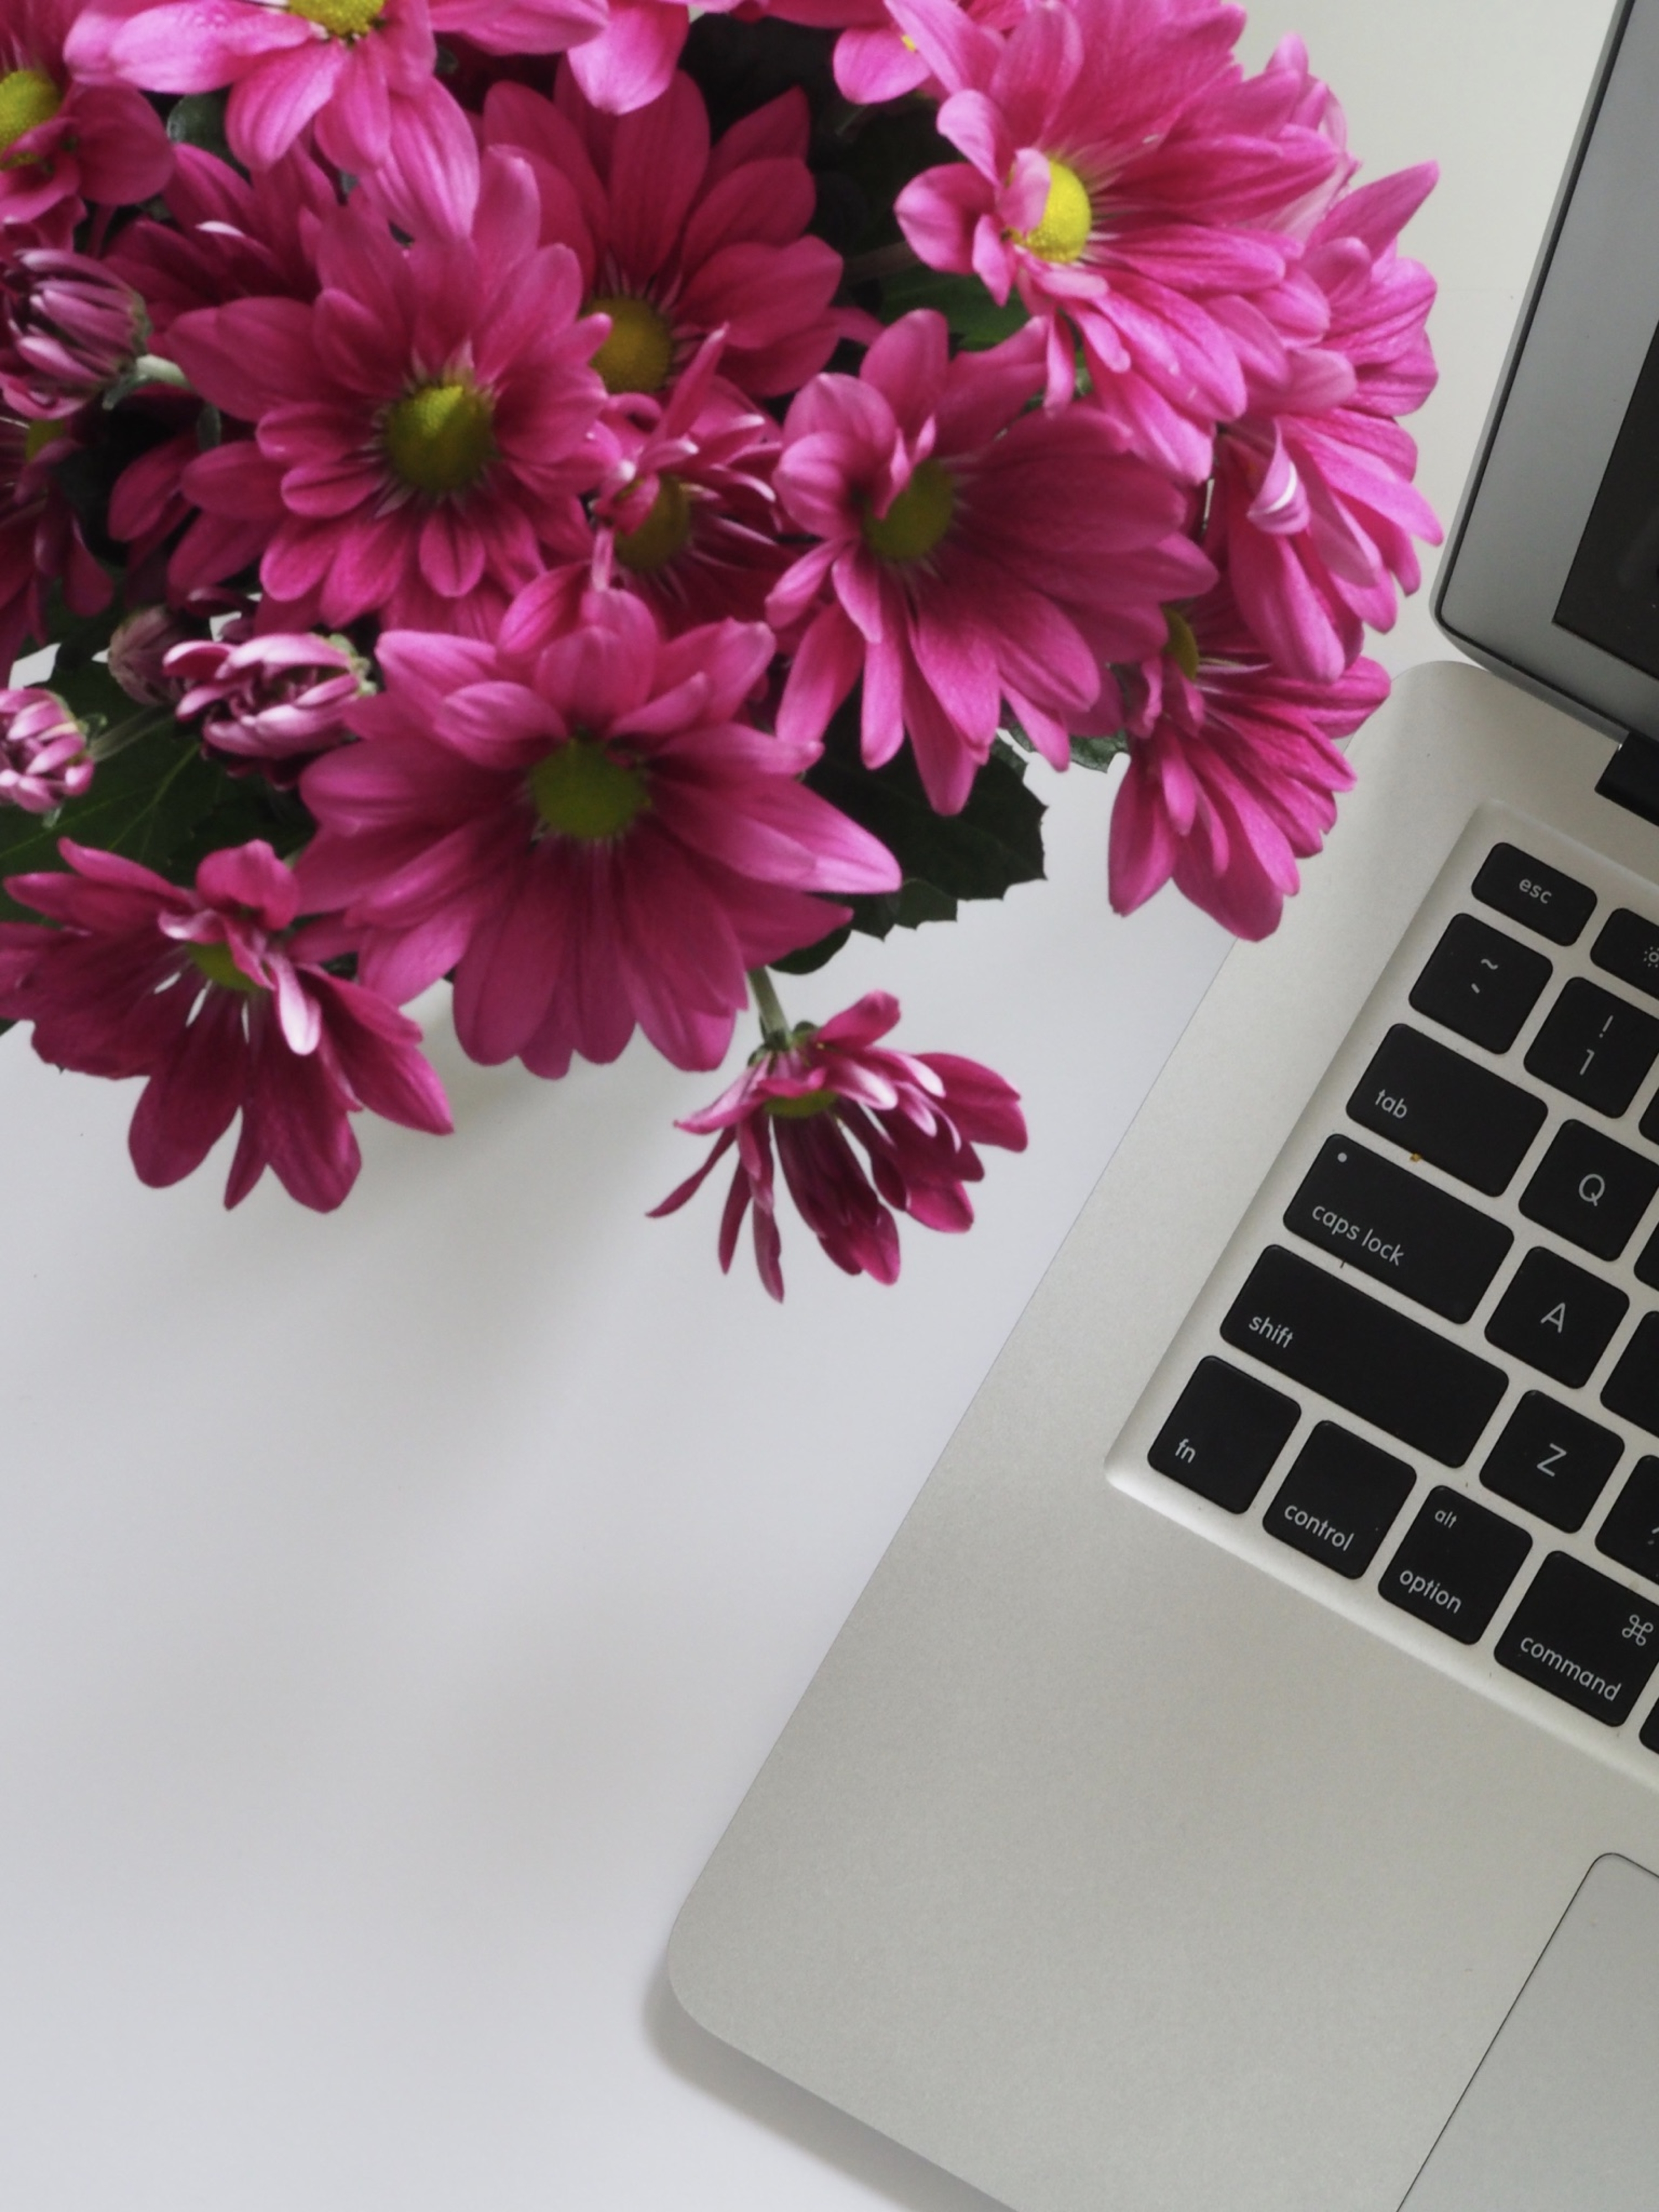 Make your workplace better with flowers